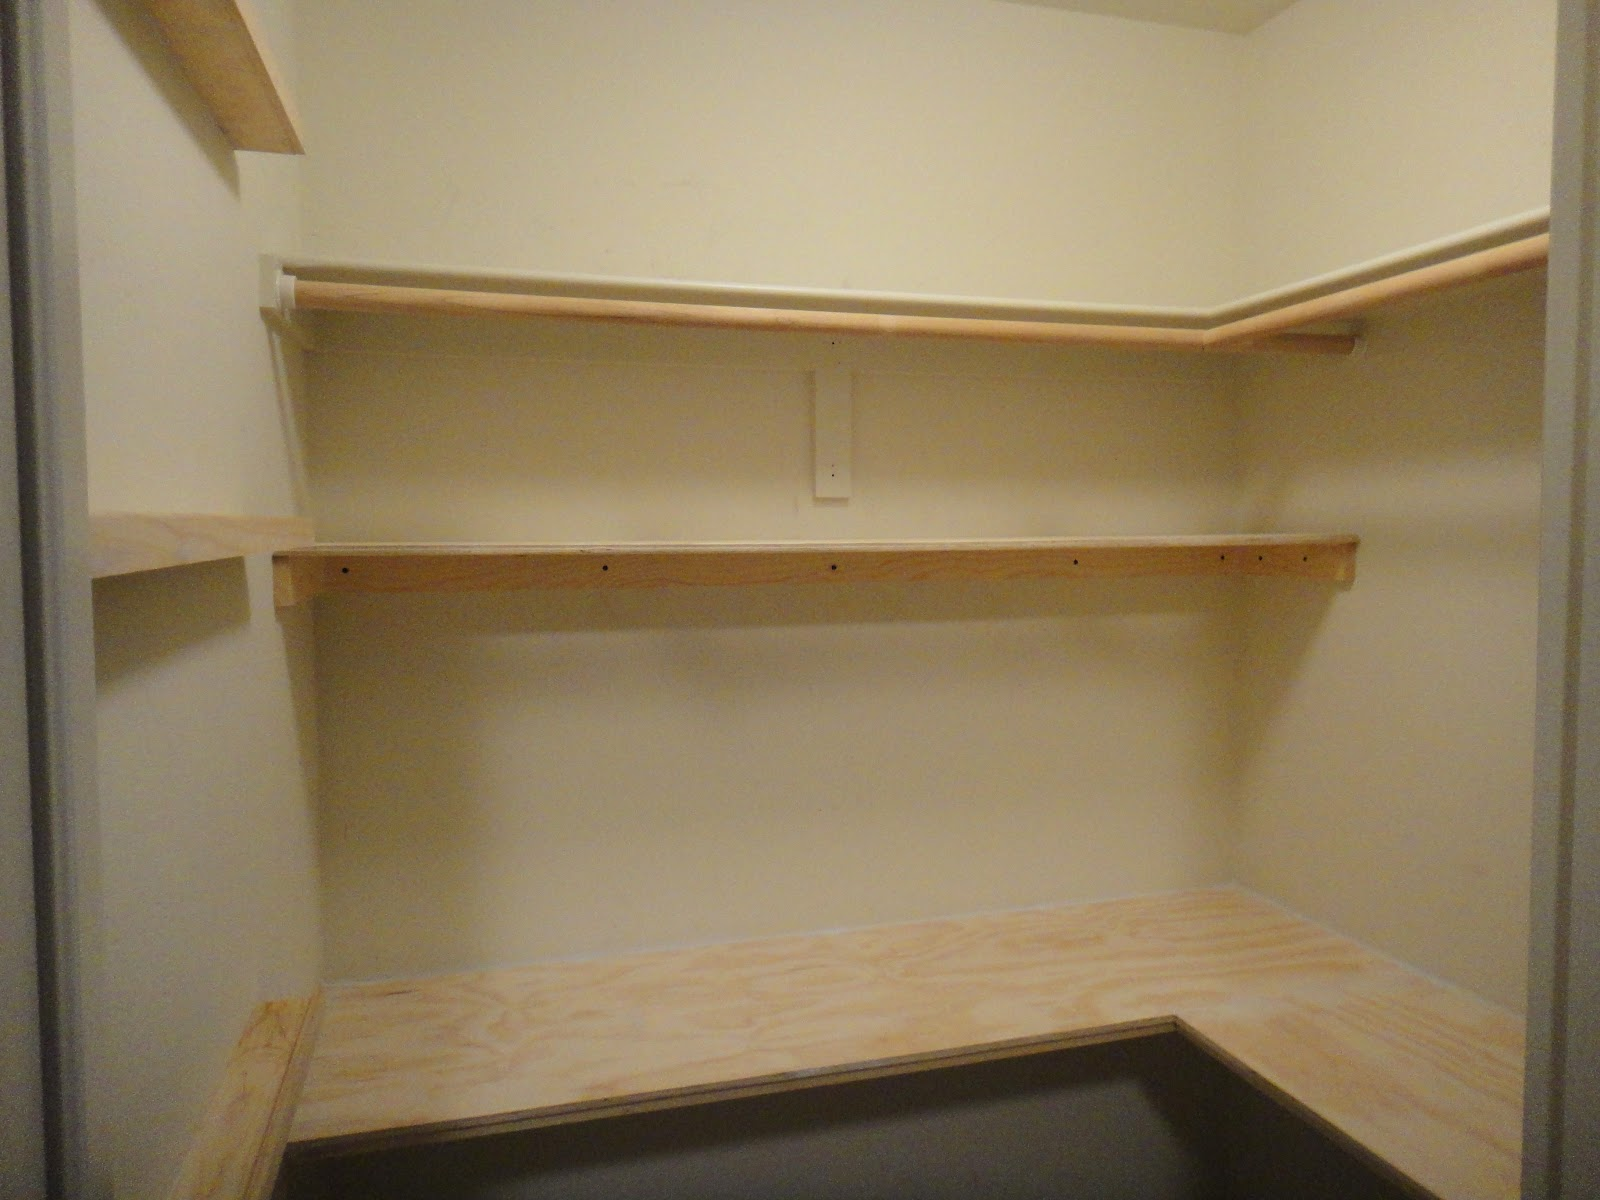 After Closet Was Cleared We Built A Lower Shelf 18 L Shaped Desktop With 3 4 Plywood And Book Photo Ledges